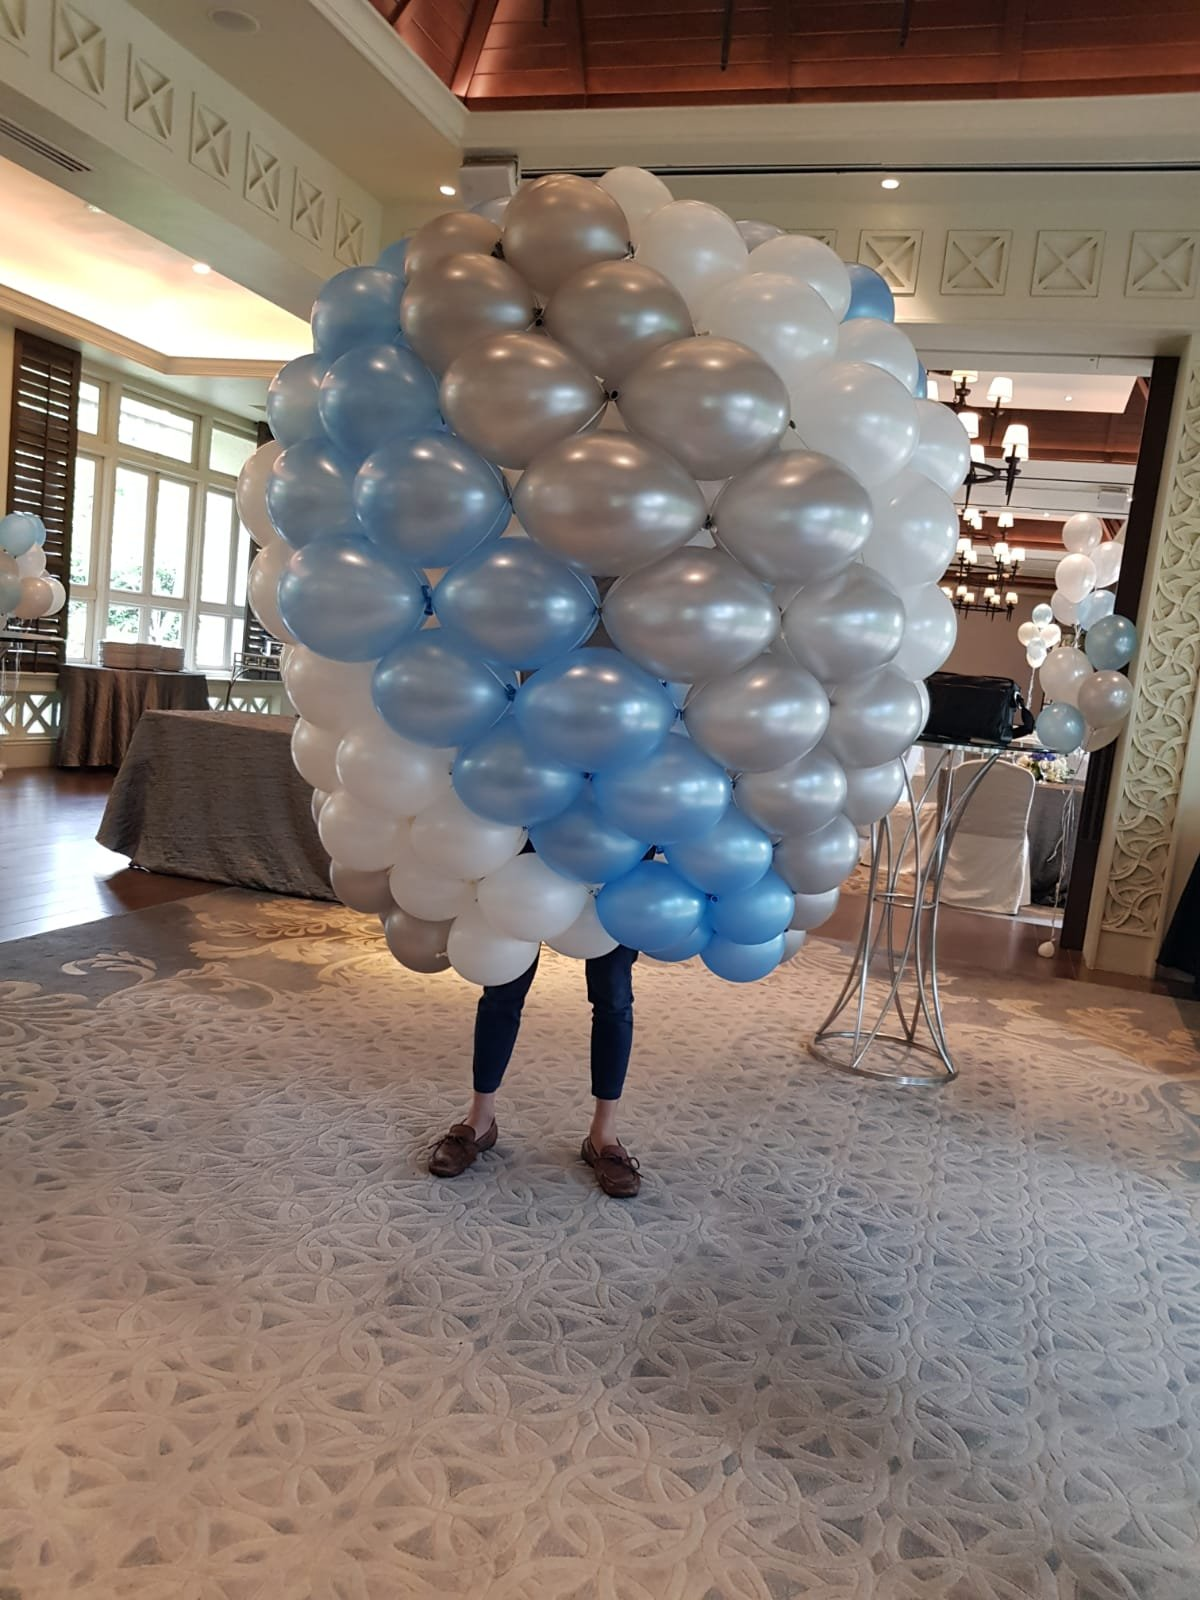 , Large Hot Air Balloon Sculpture Display For Phototaking, Singapore Balloon Decoration Services - Balloon Workshop and Balloon Sculpting